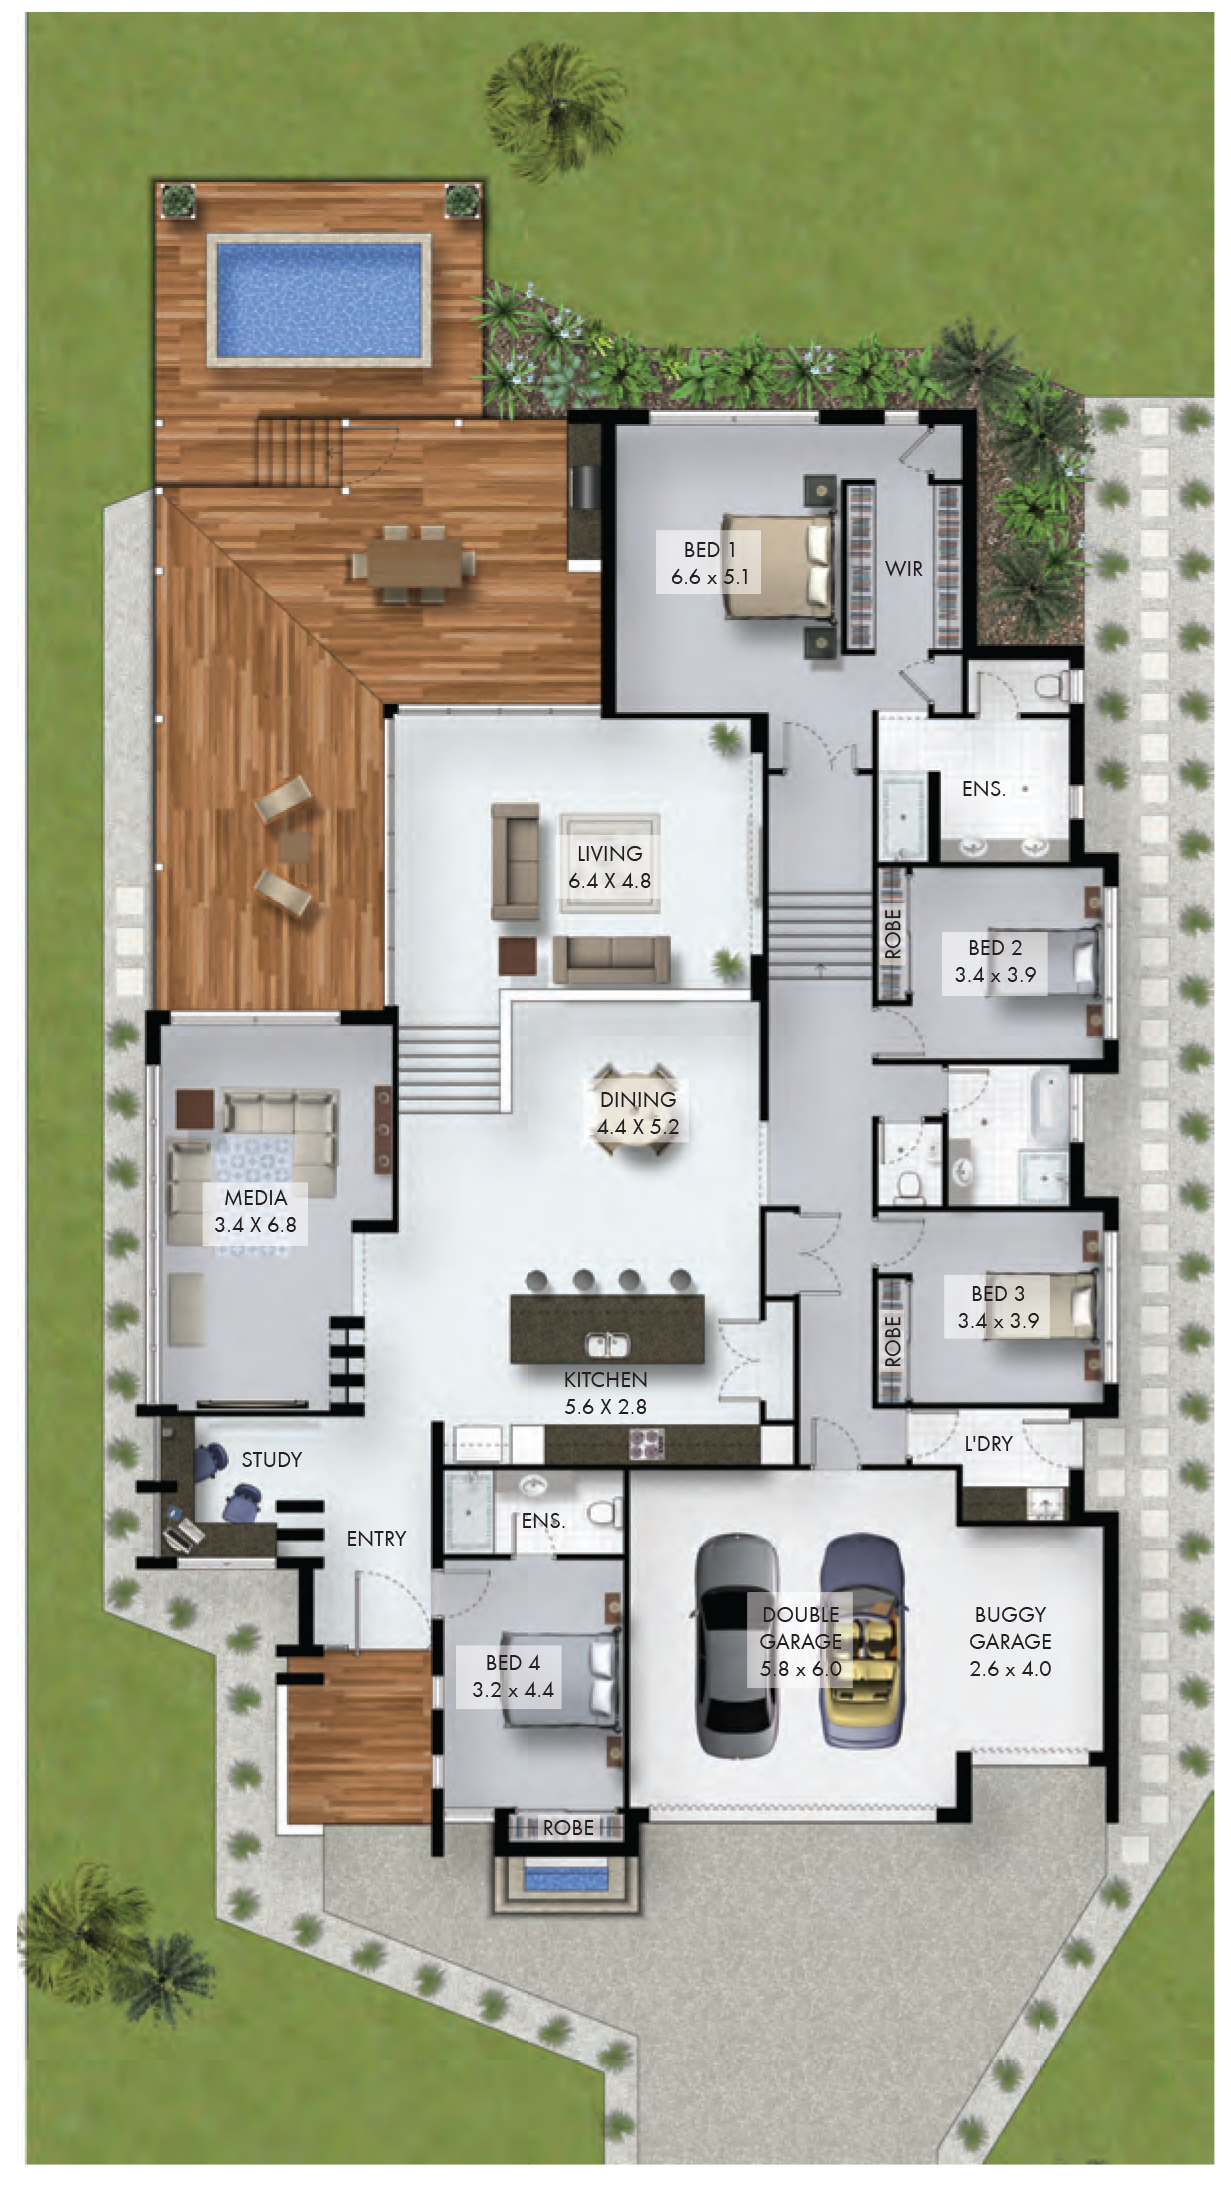 House Plan With 4 Car Garage Remarkable quotes House Designer kitchen